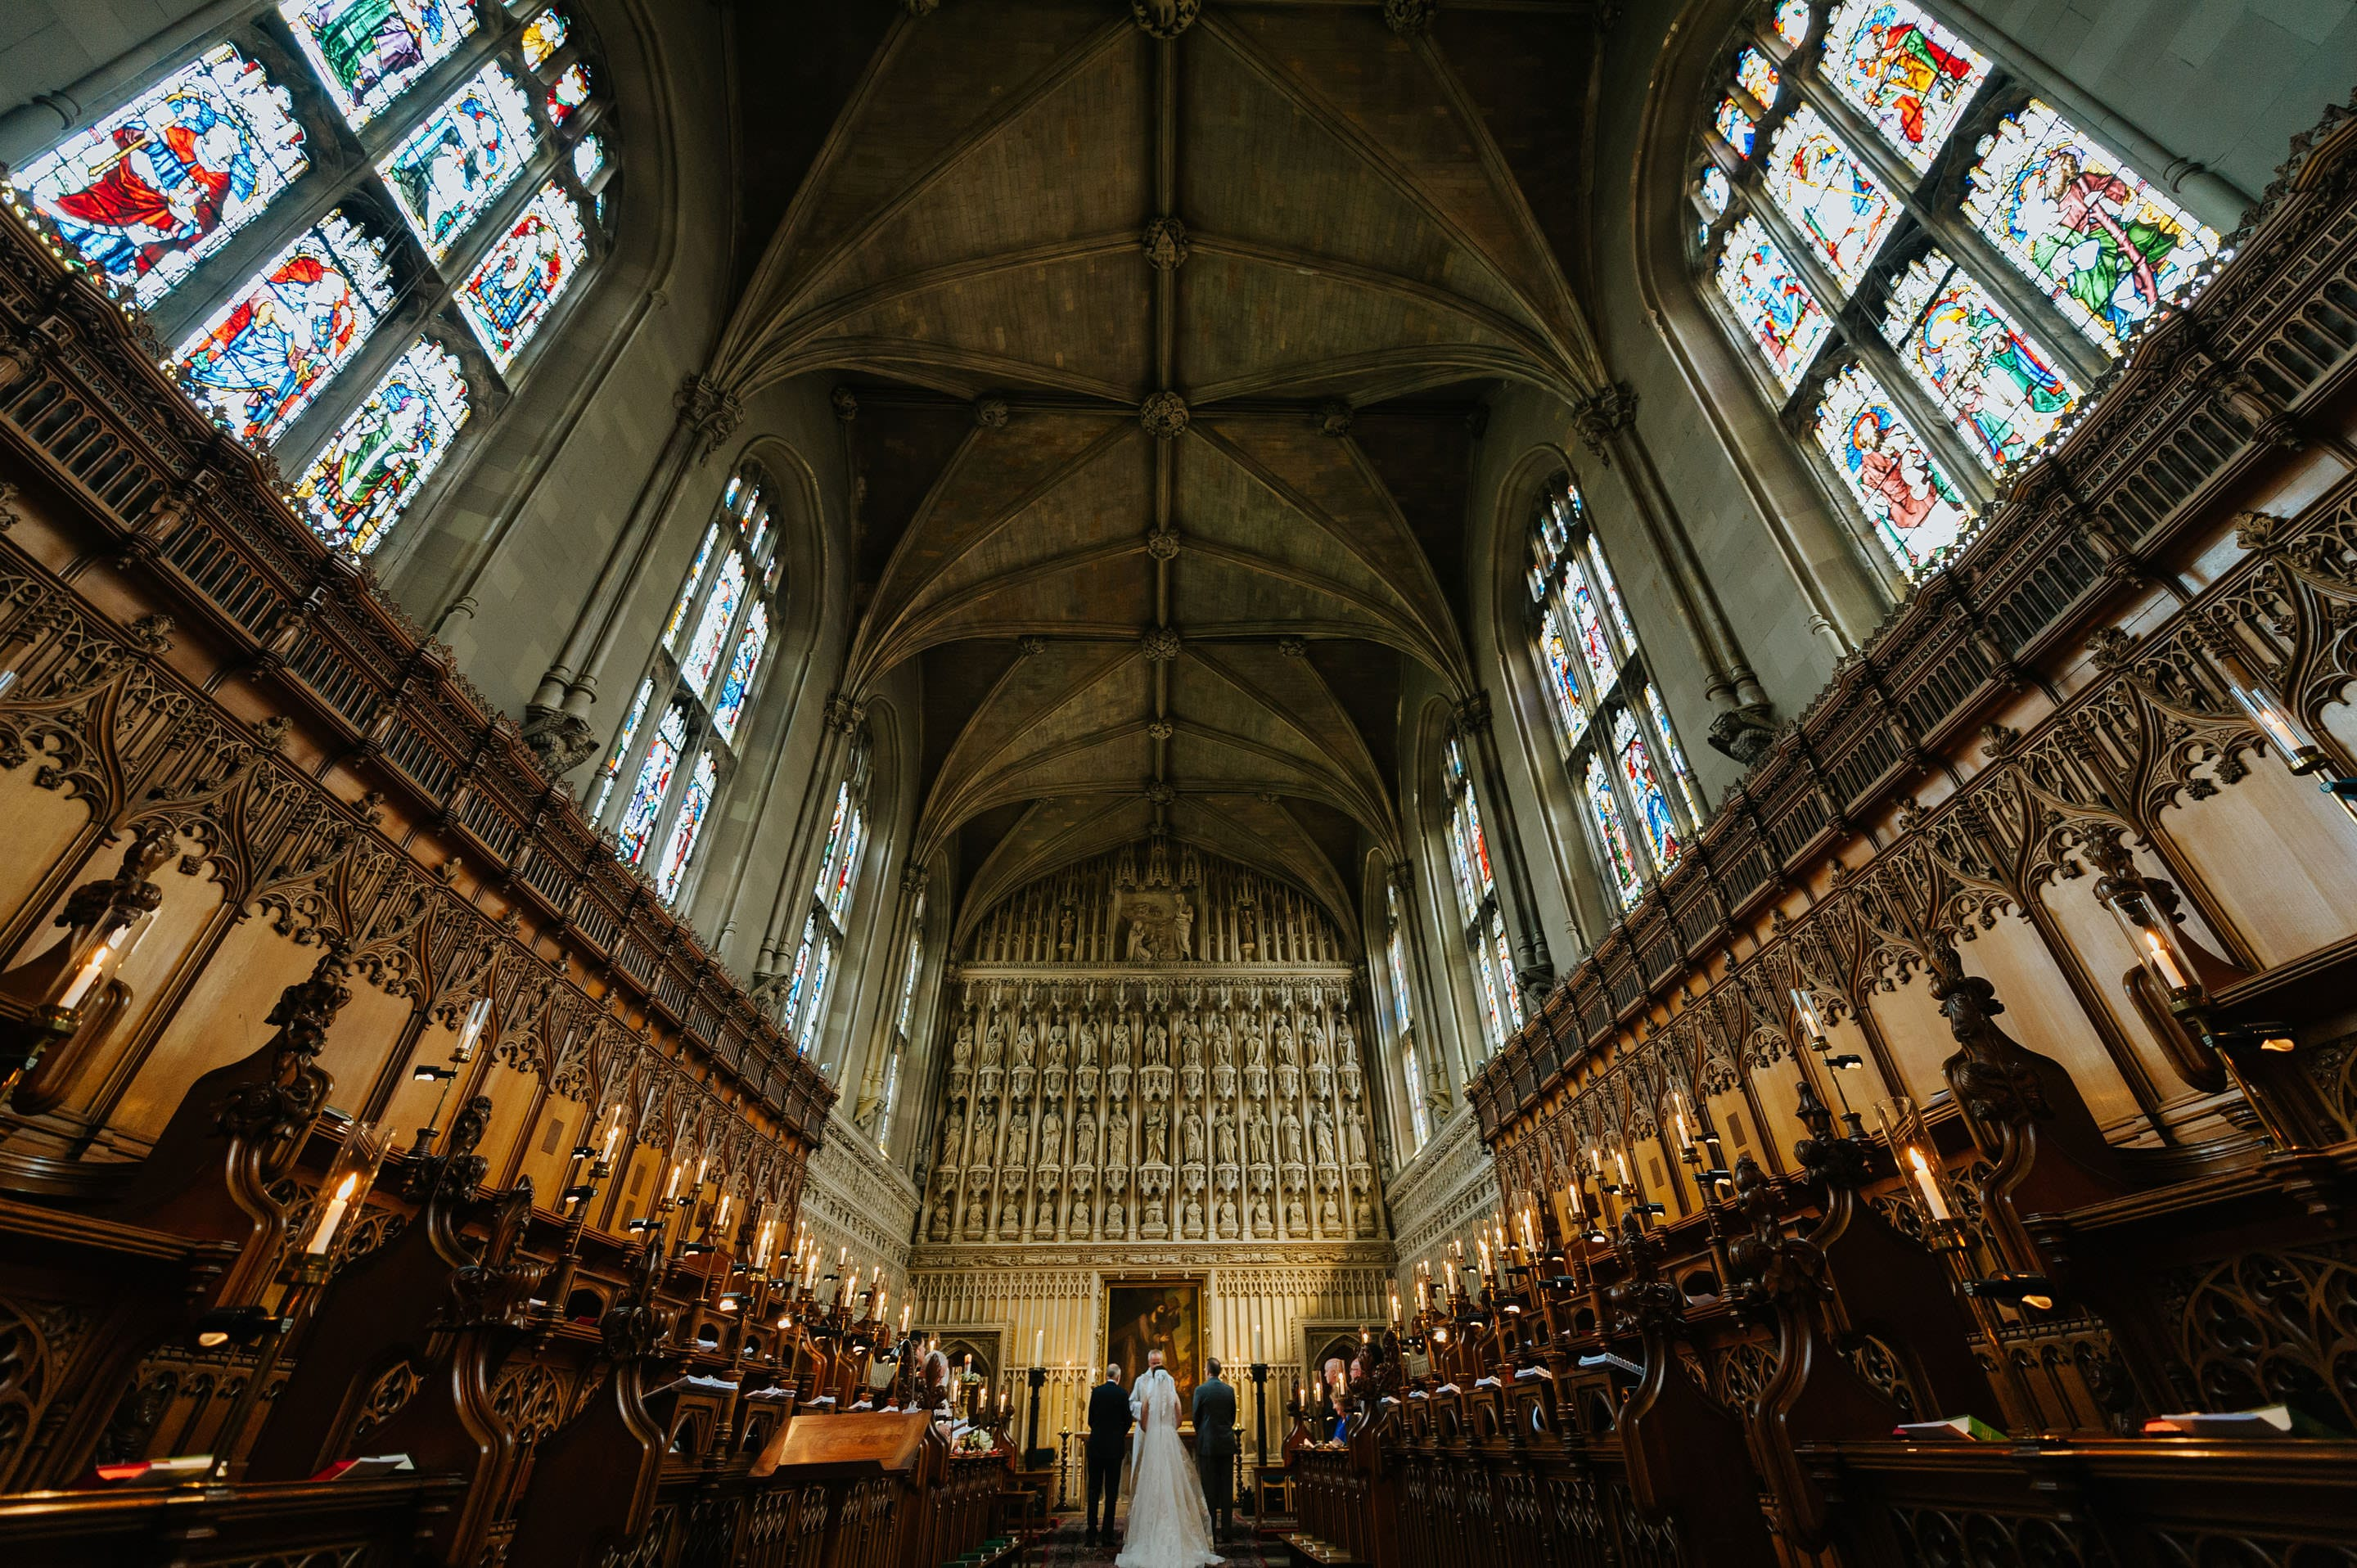 wedding at magdalen college in oxford 23 - Tommie + Virginia | Wedding at Magdalen College in Oxford